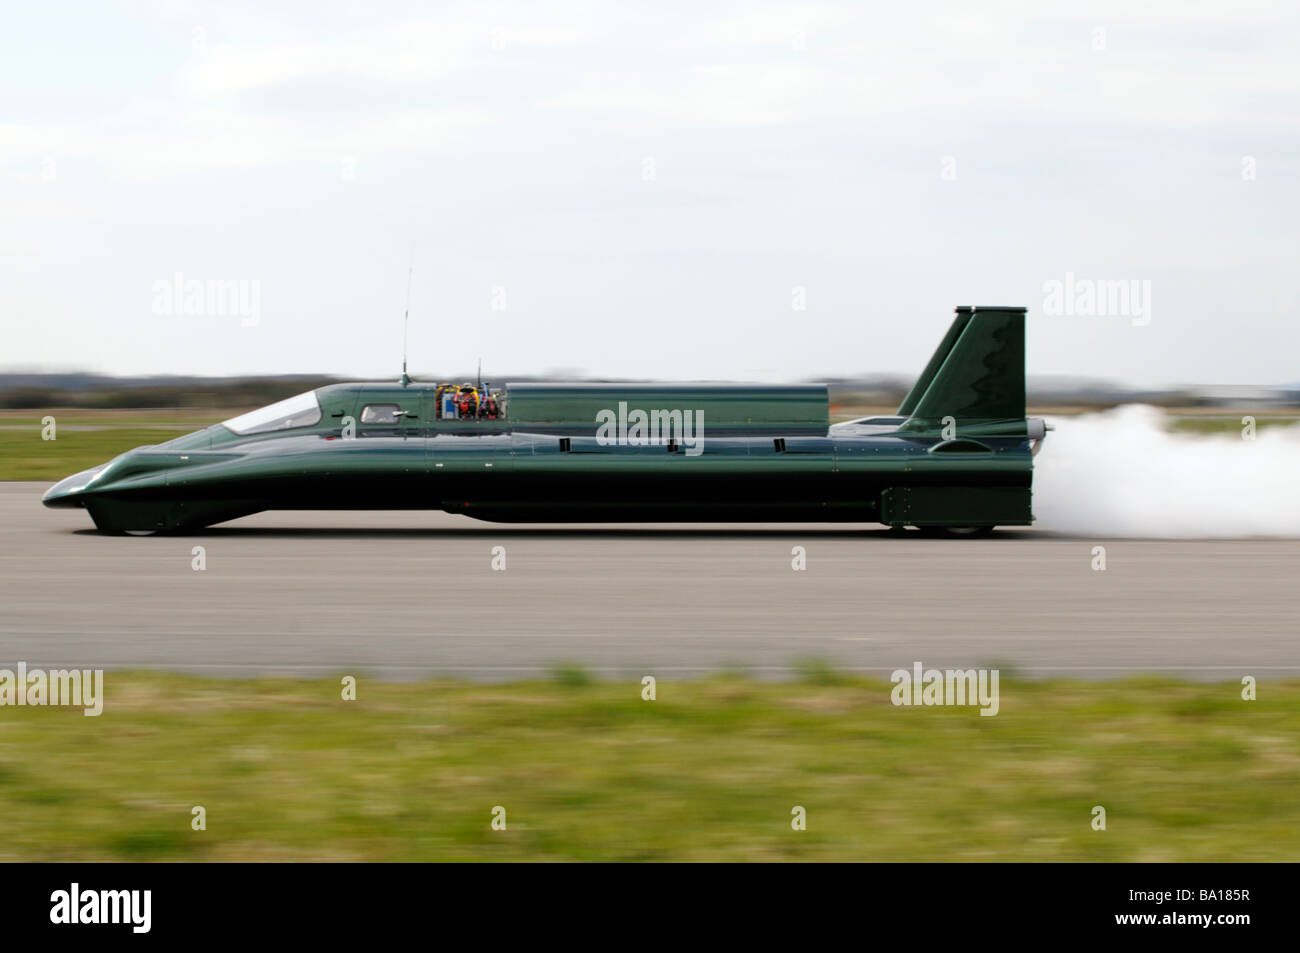 Inspiration the steam powered land speed record car undergoing a